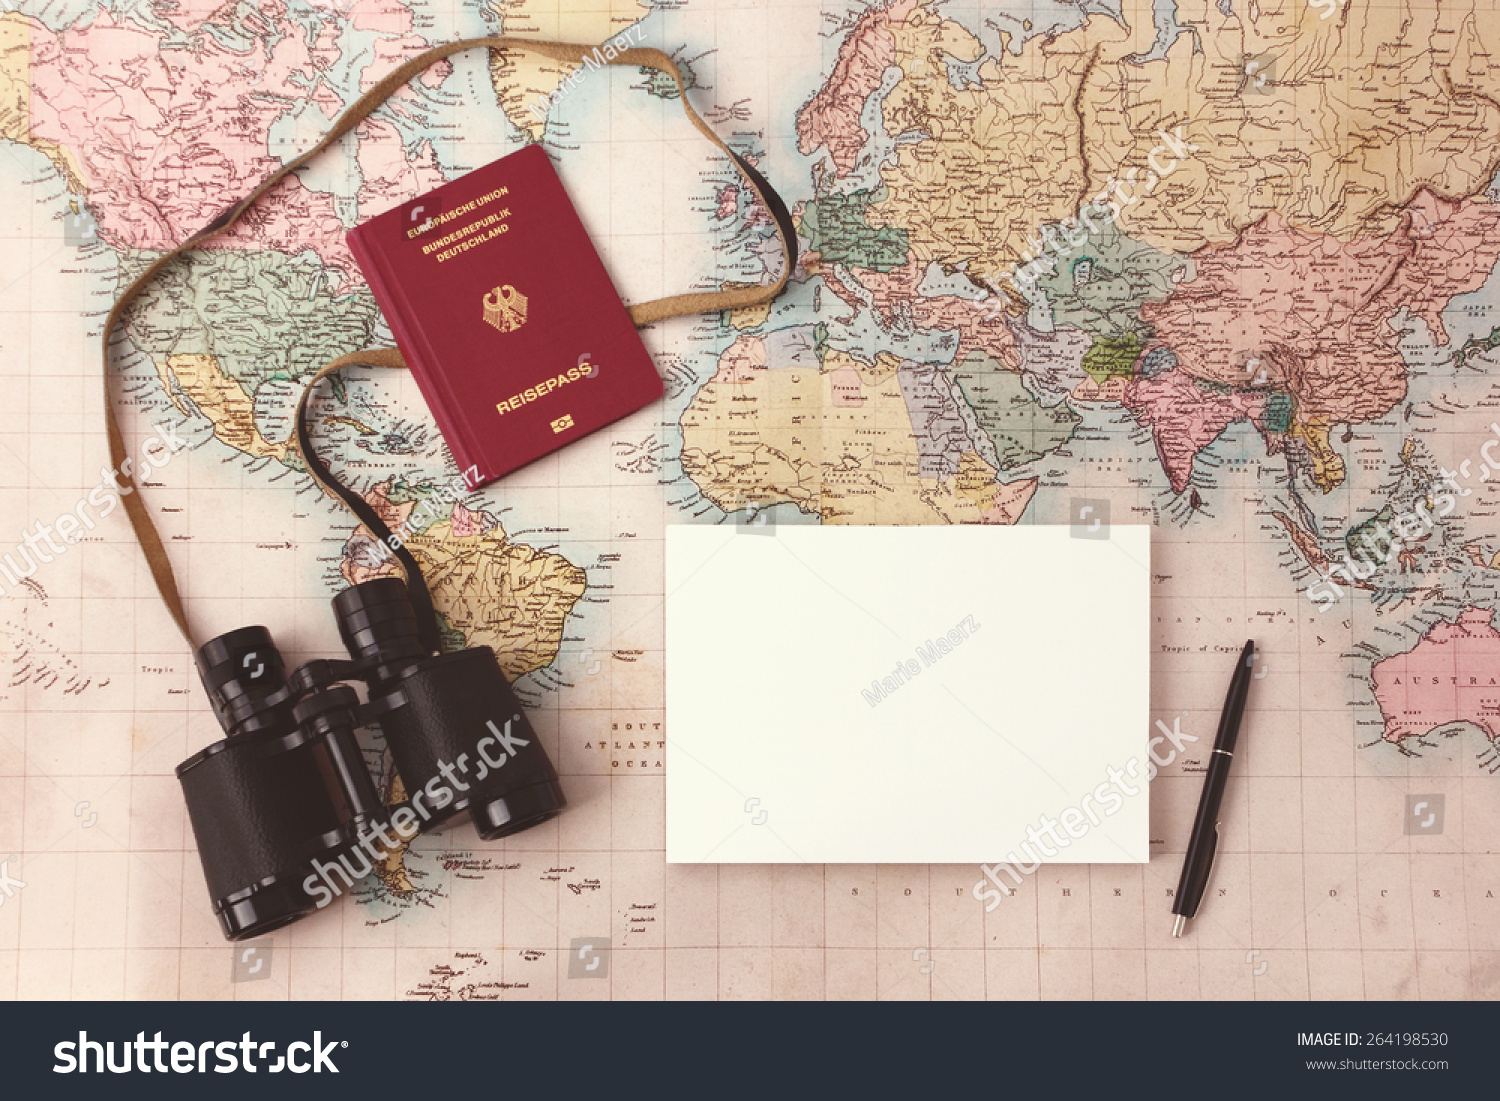 Travel Planning Map Passport Notepad Pen Photo 264198530 – Travel Planning Map